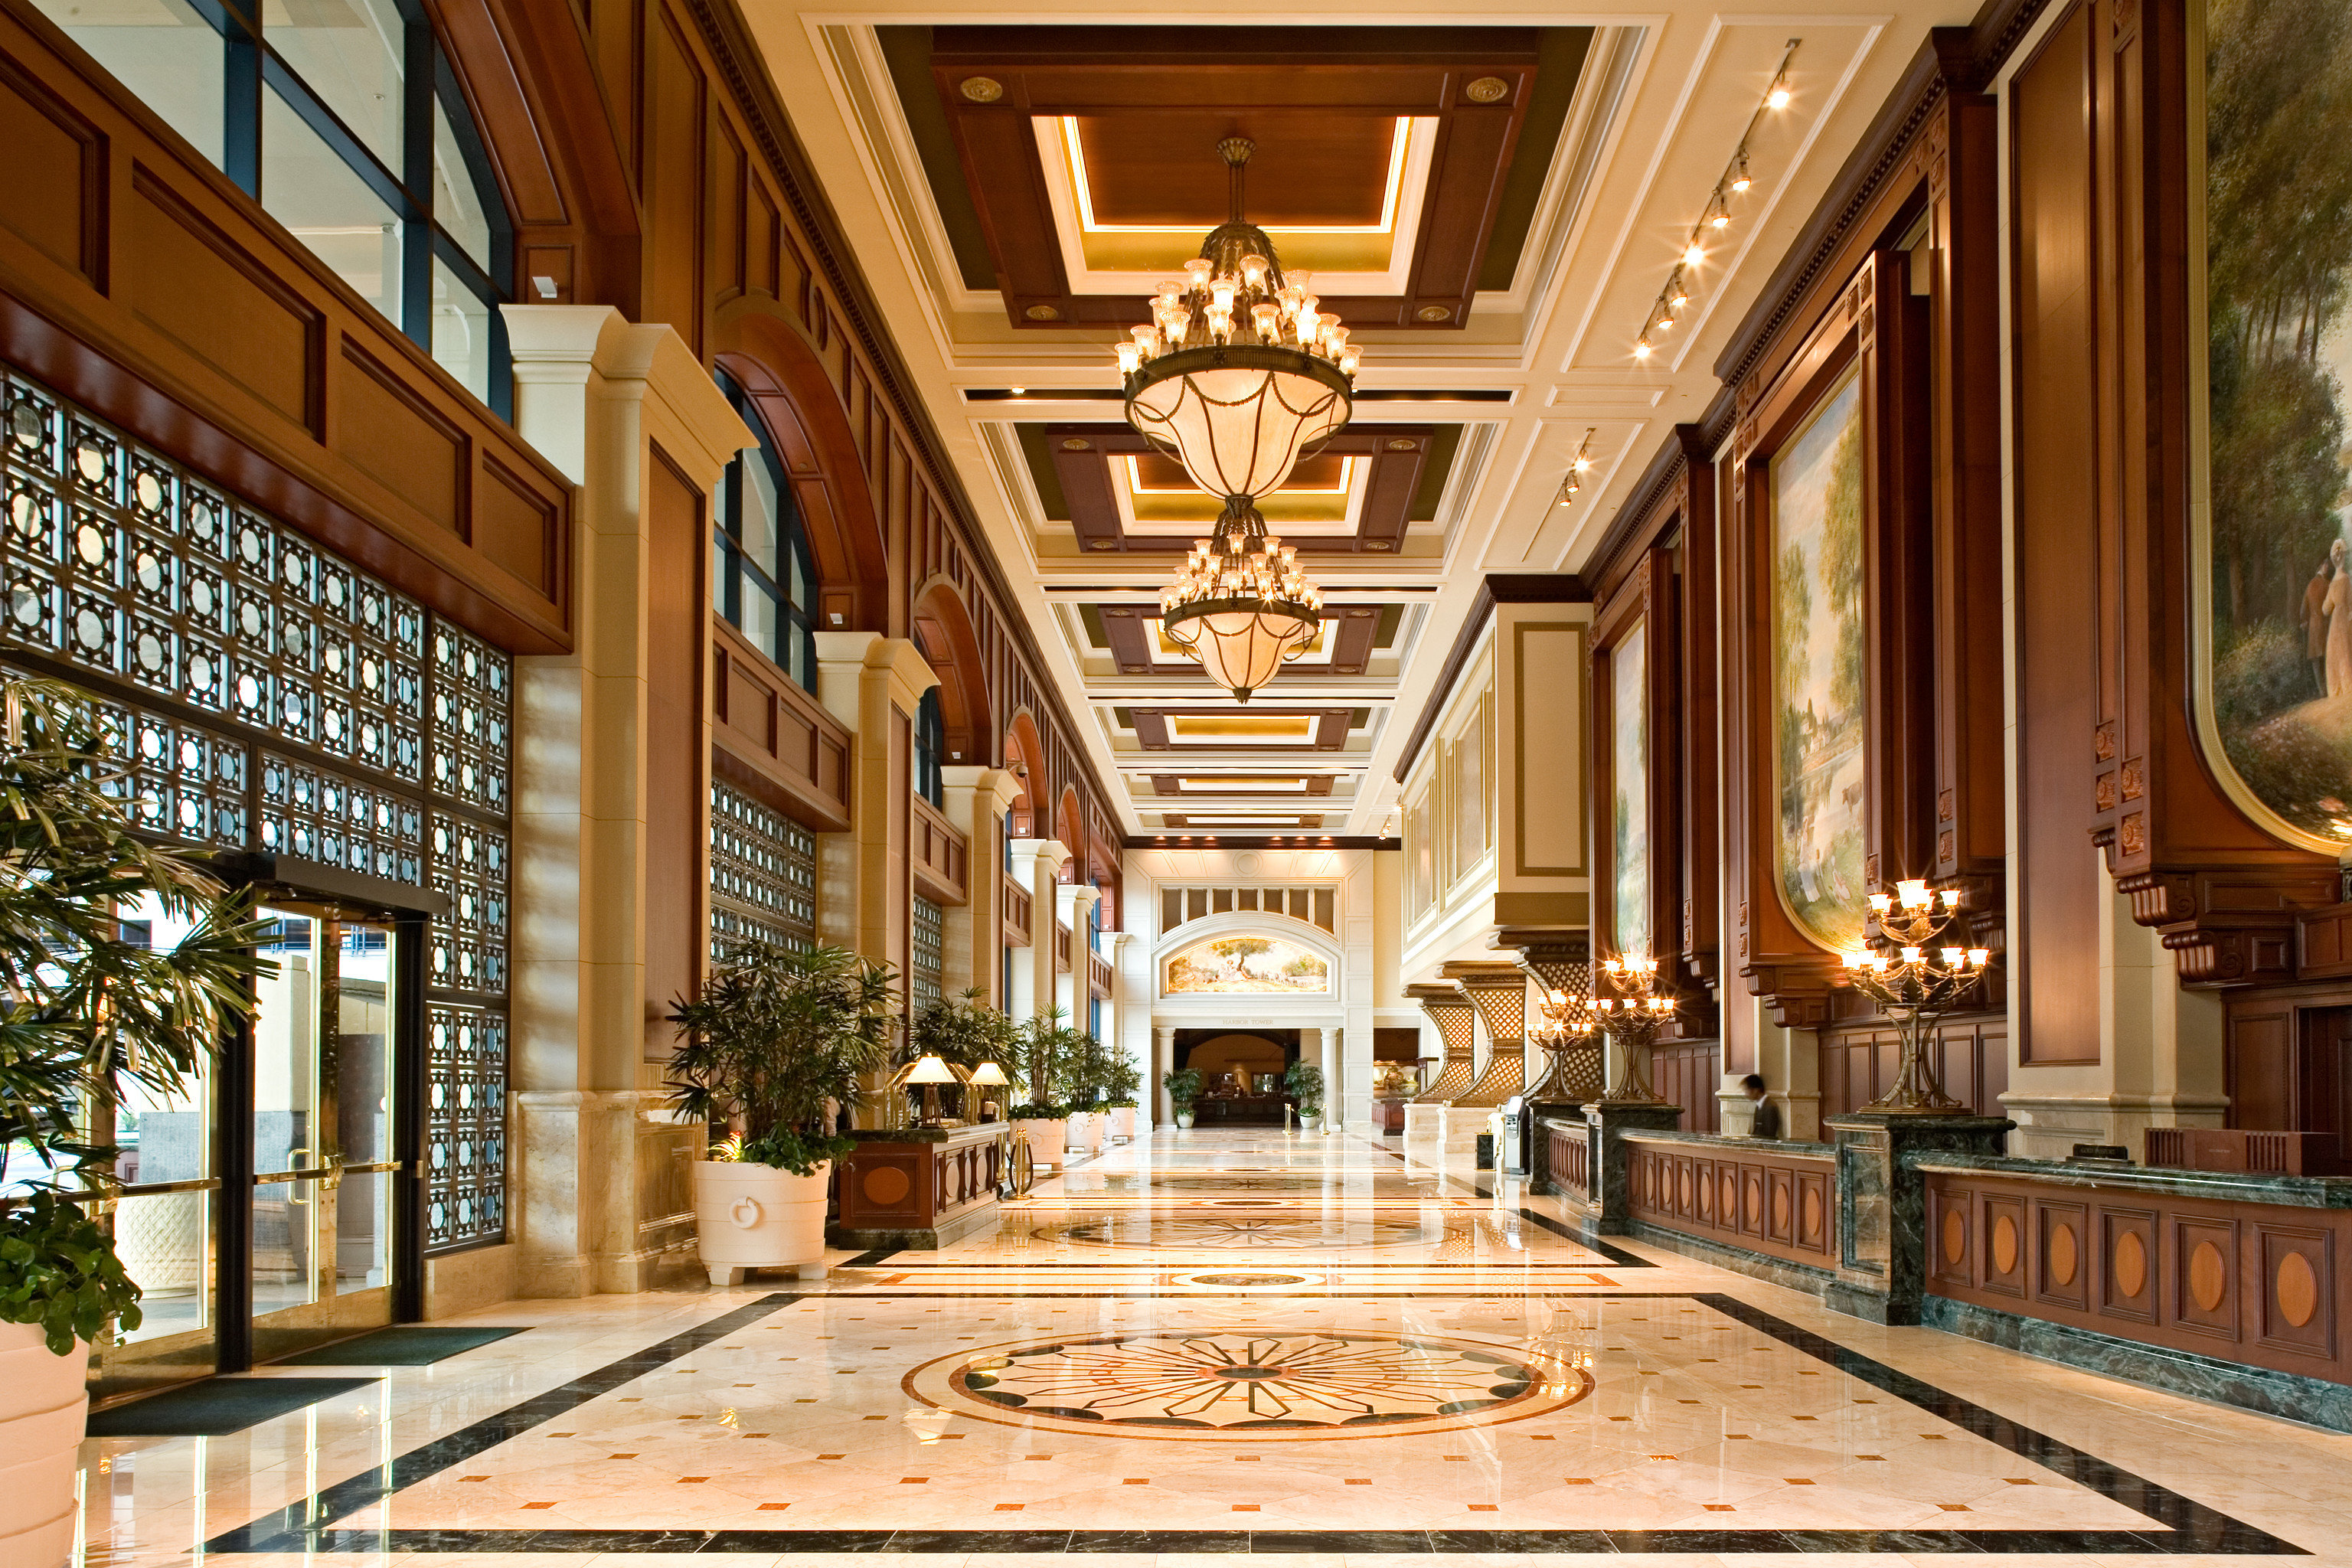 Elegant Lobby building palace mansion plaza ballroom place of worship chapel Courtyard synagogue colonnade